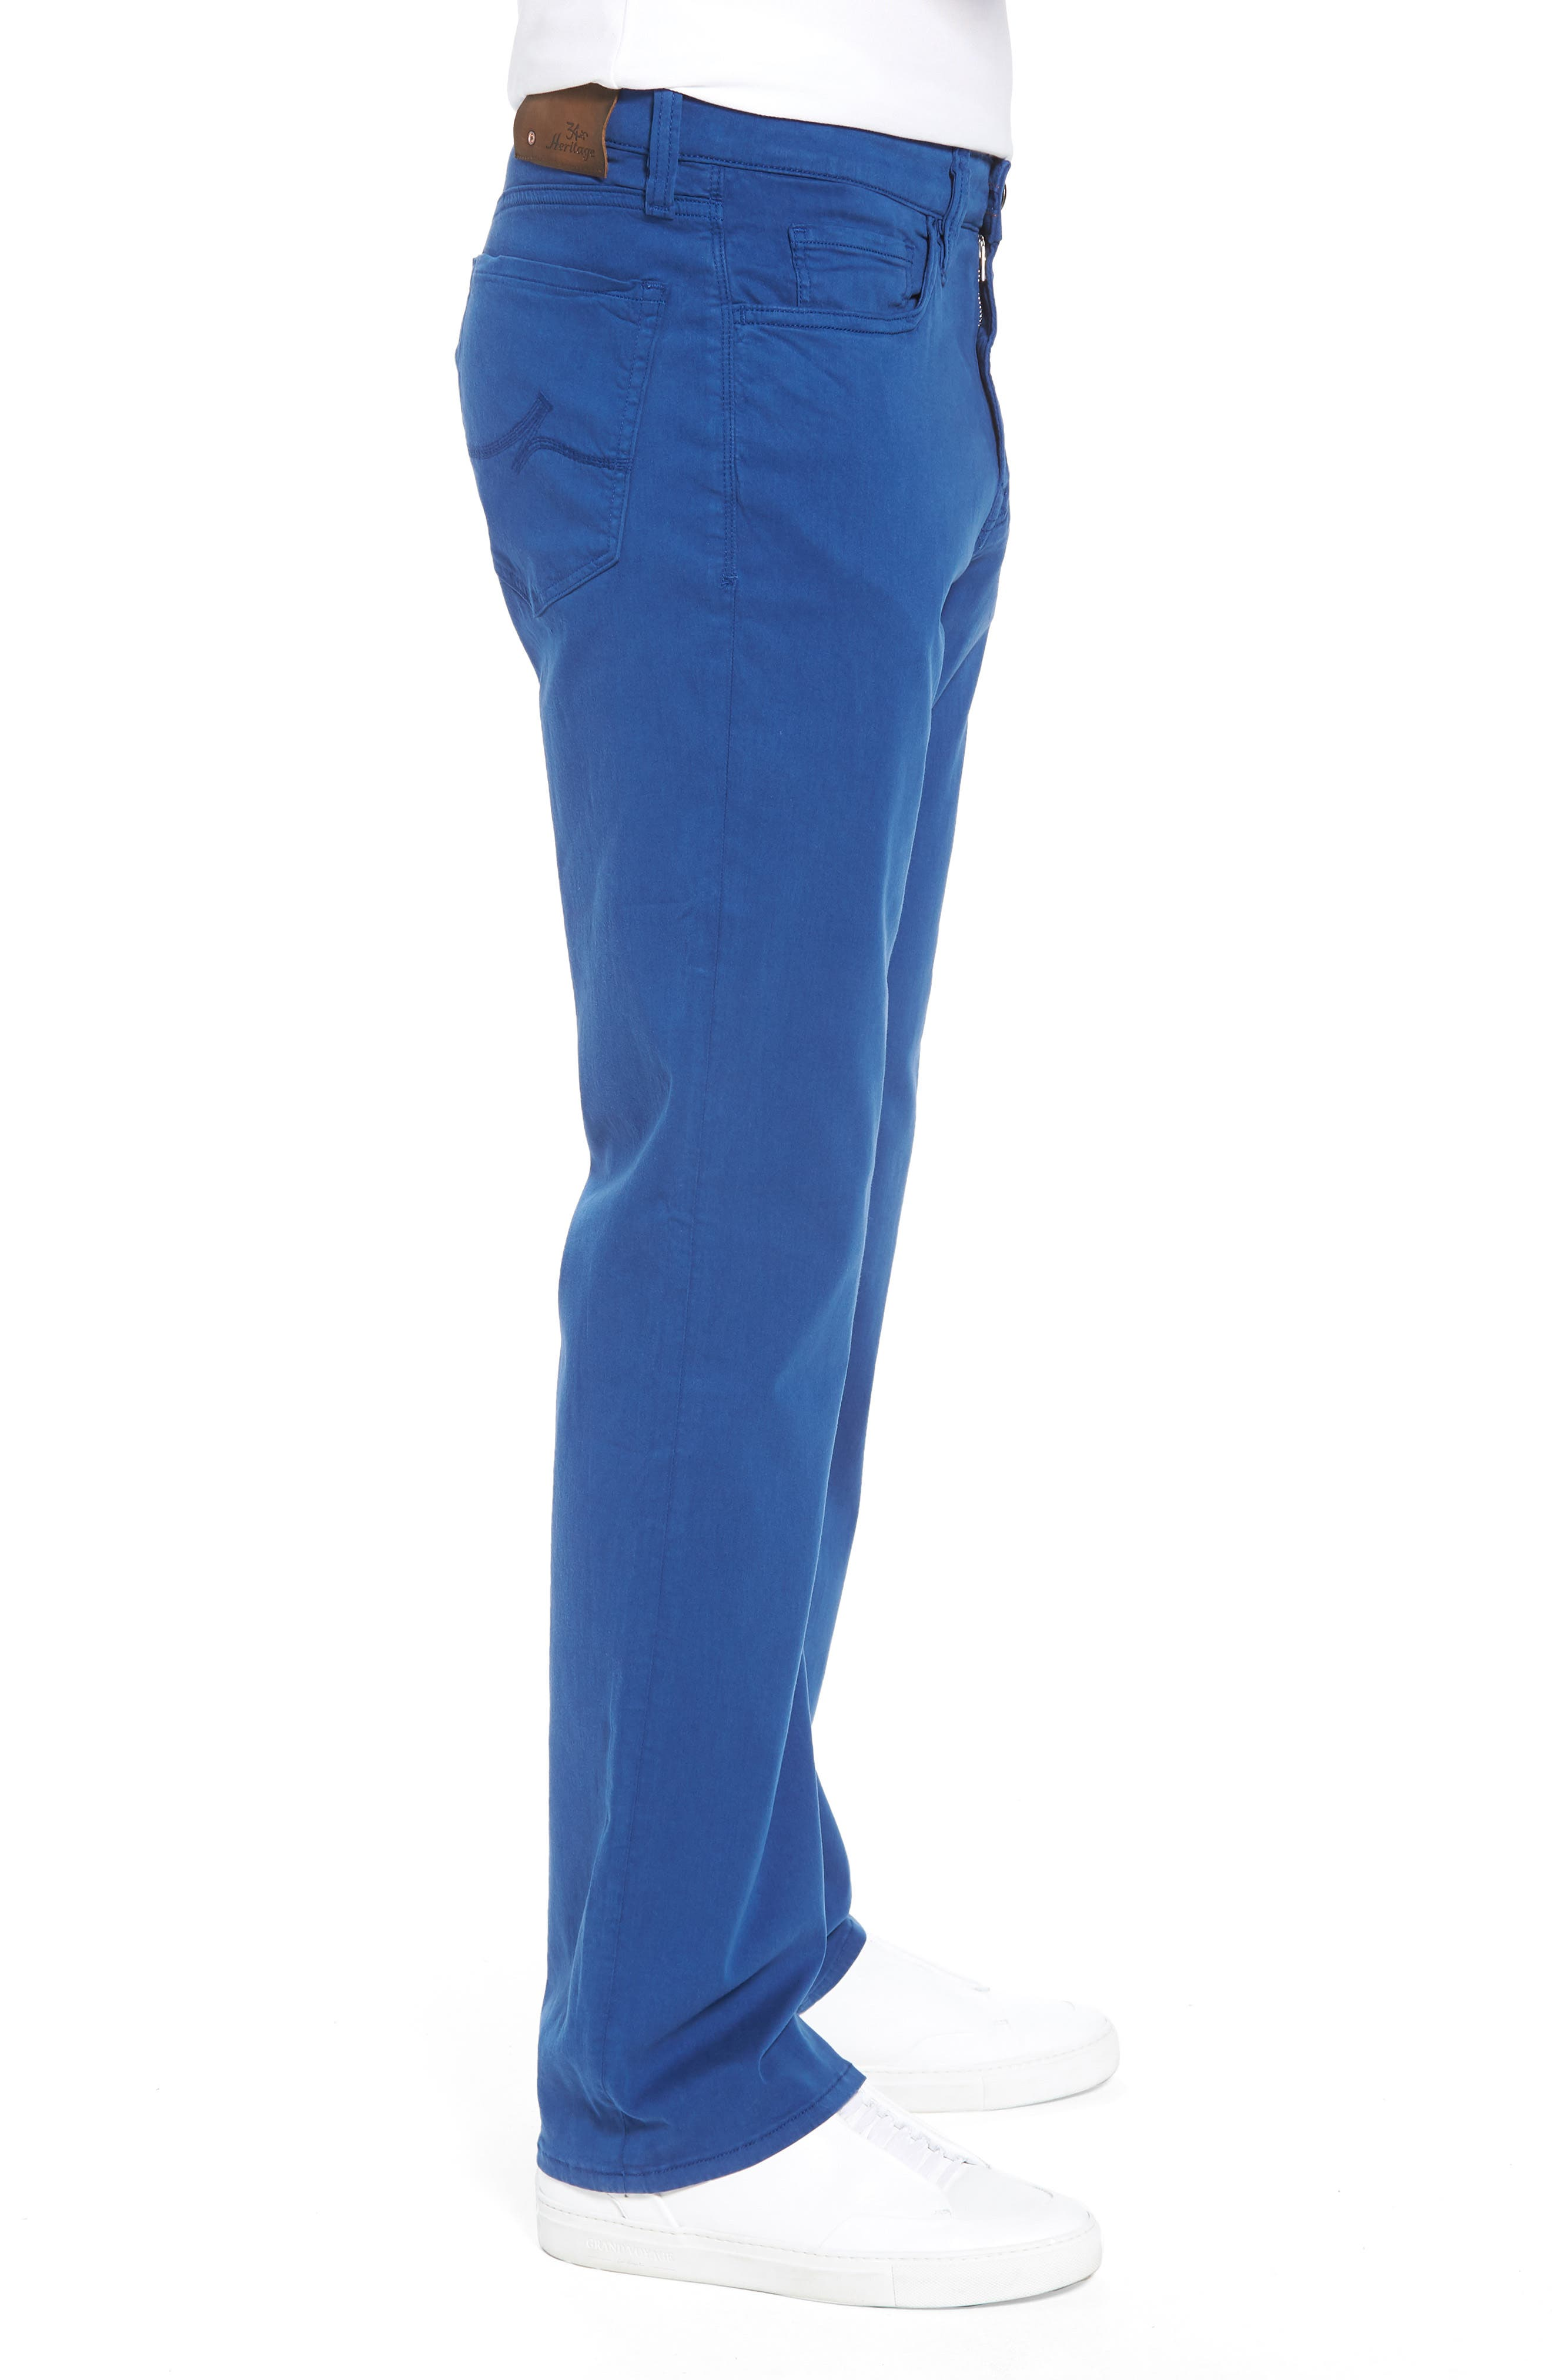 Charisma Relaxed Fit Jeans,                             Alternate thumbnail 3, color,                             ROYAL TWILL